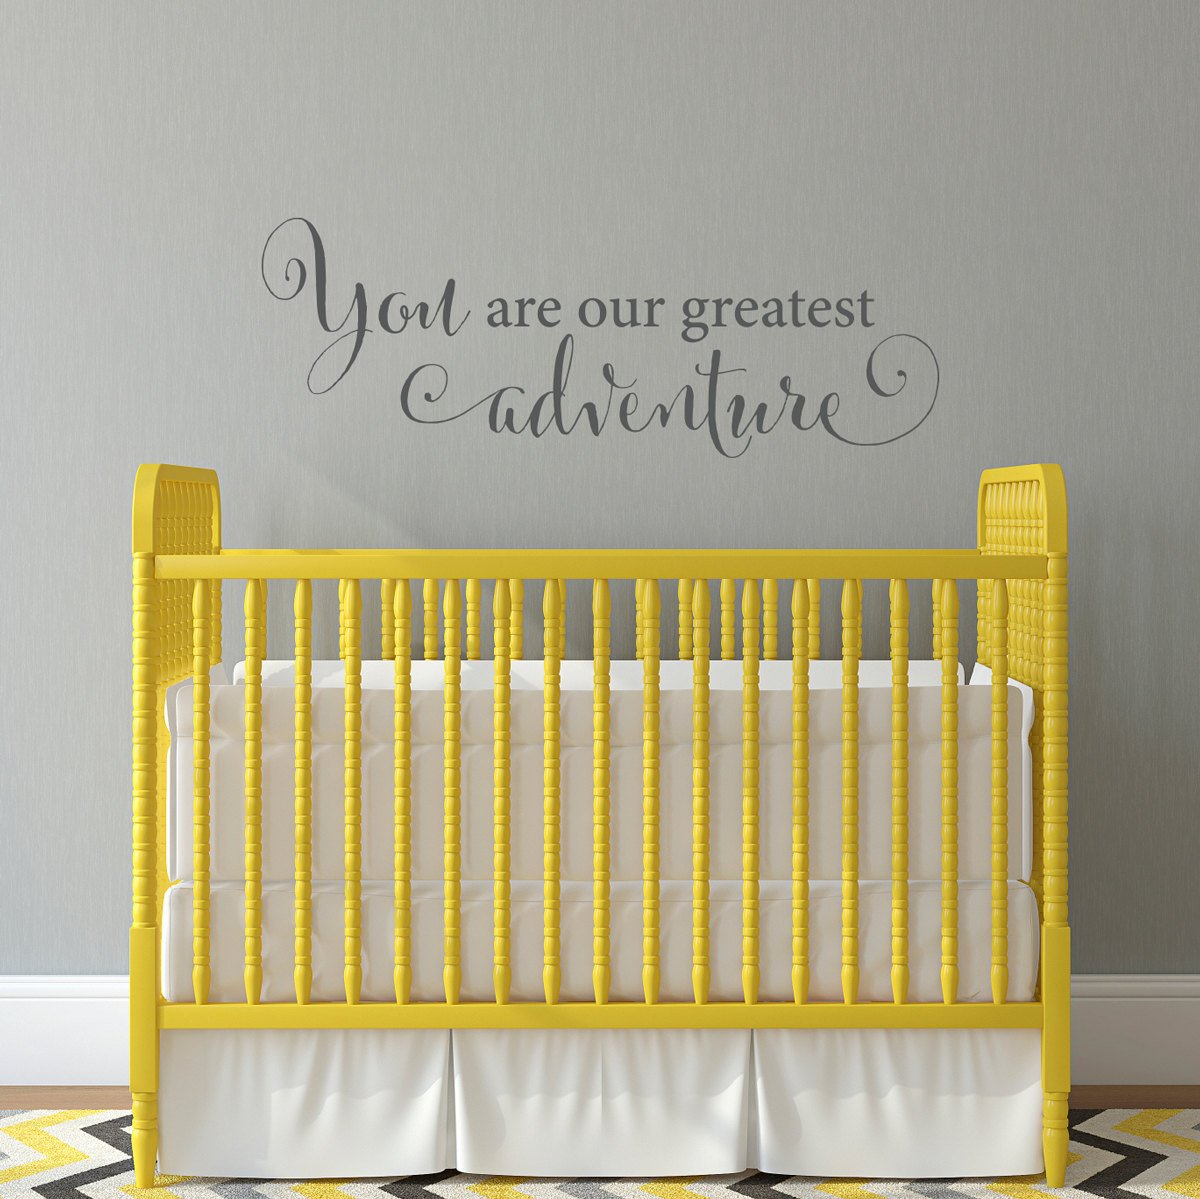 Amazon.com: You are our greatest adventure Decal - Nursery Wall ...